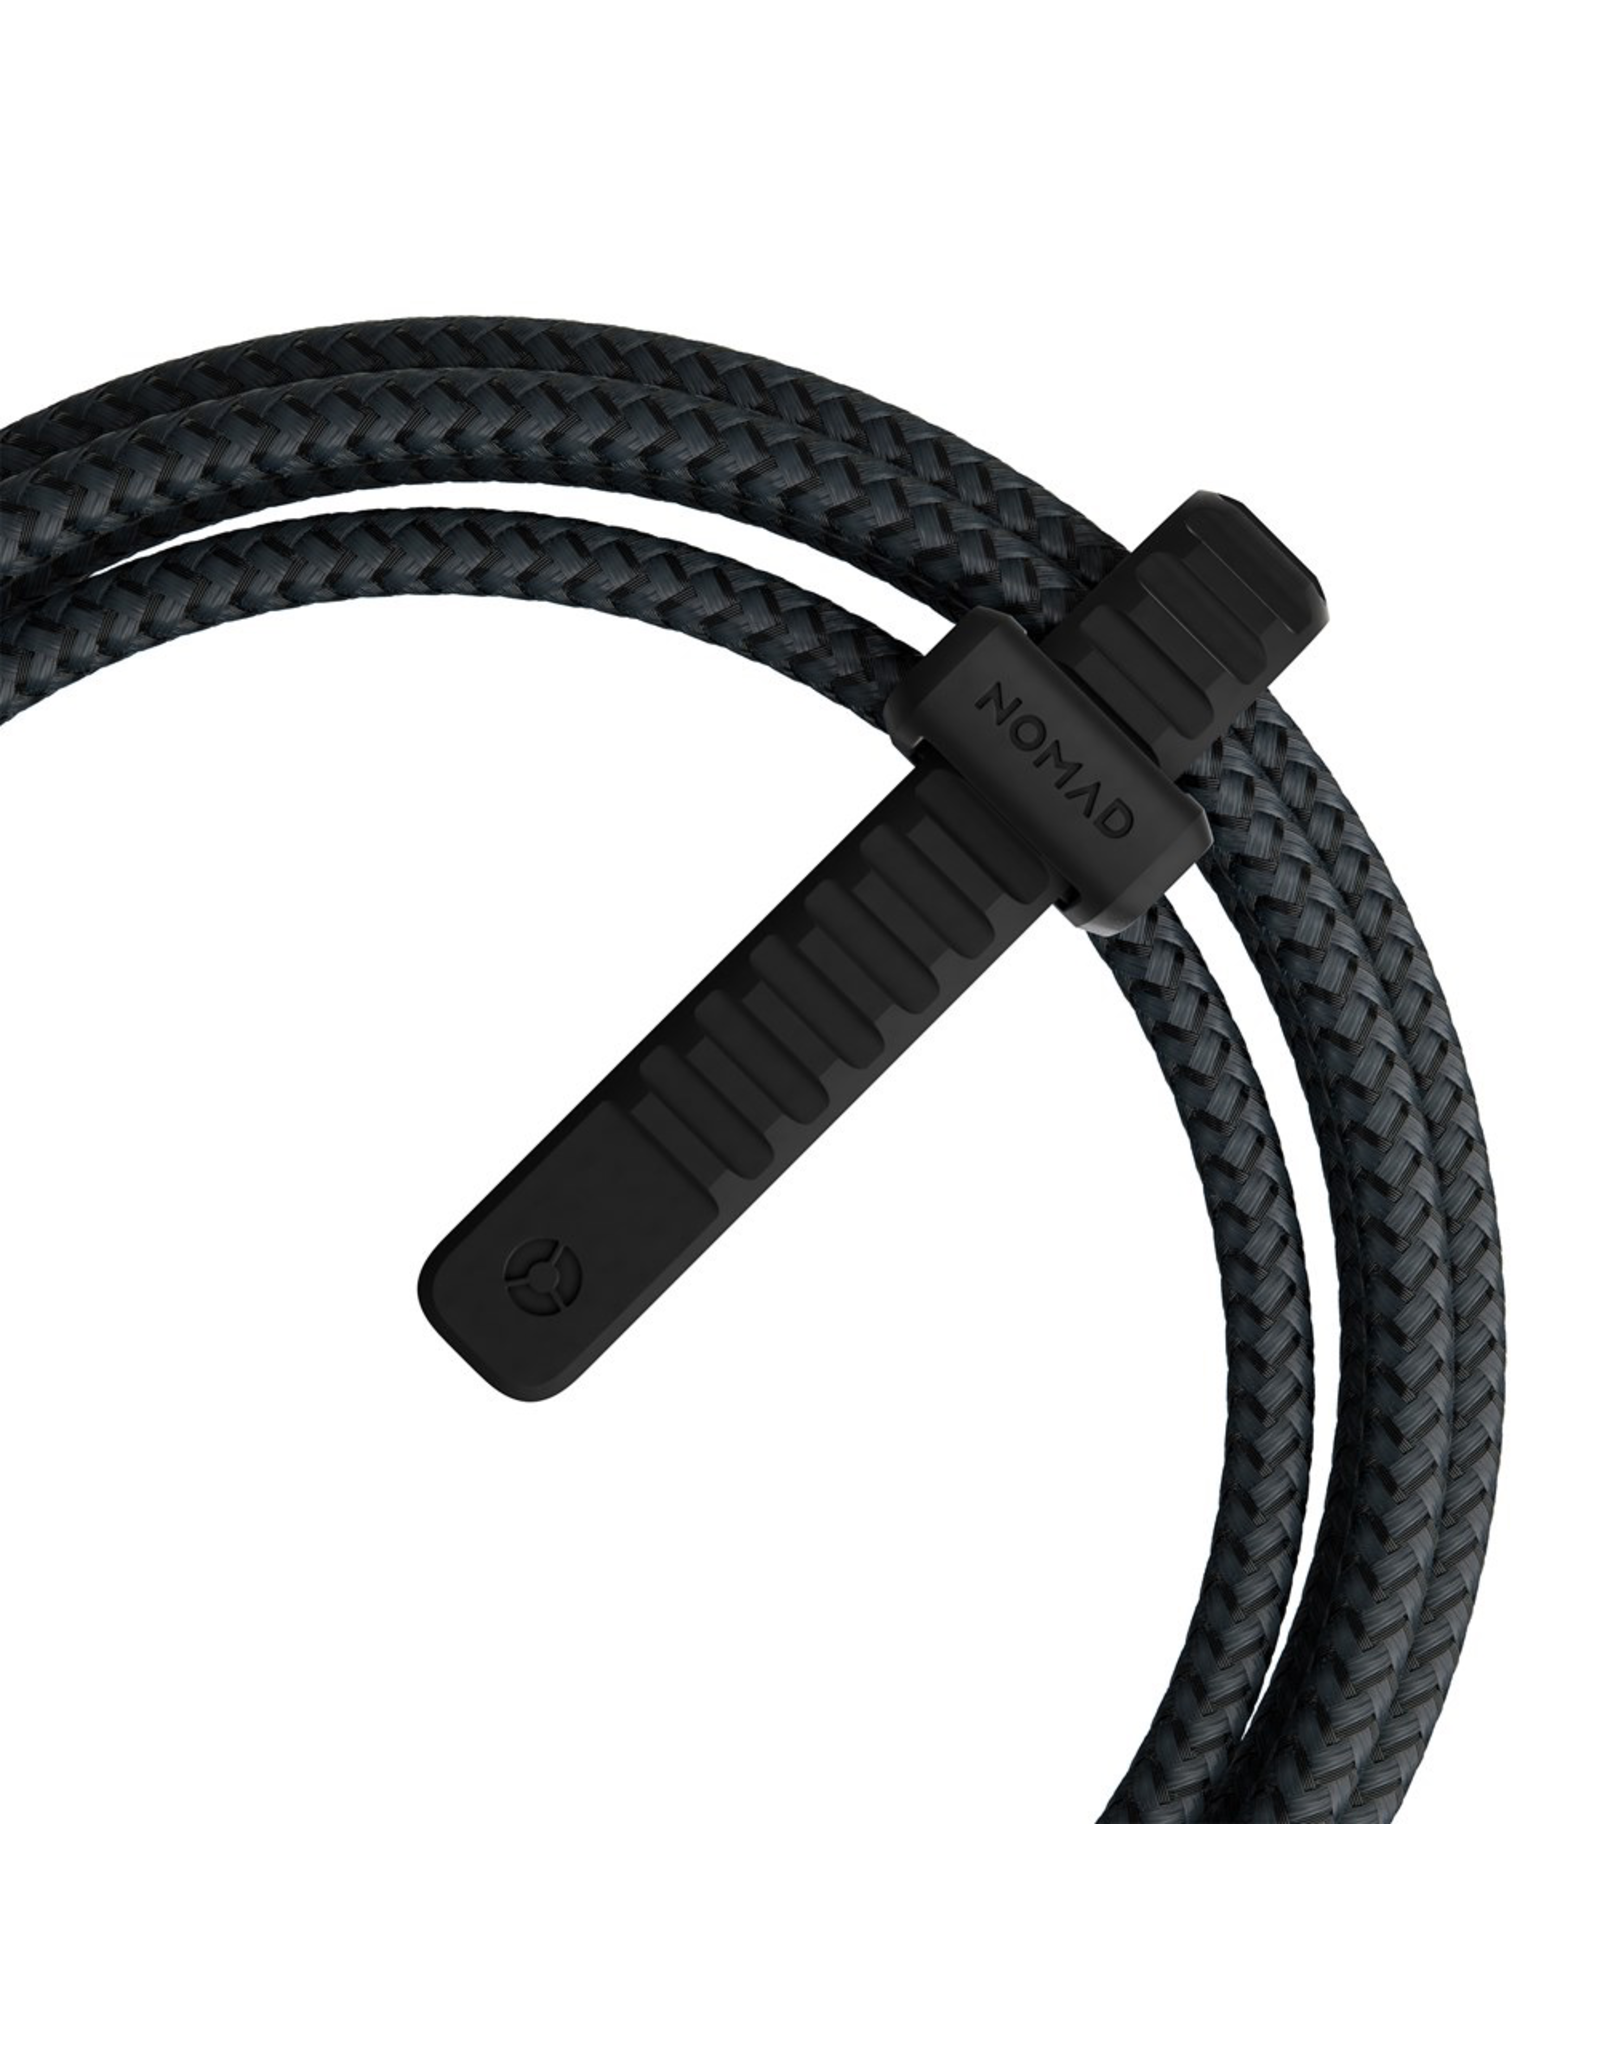 Nomad Nomad Lightning Cable with Kevlar - 1.5m